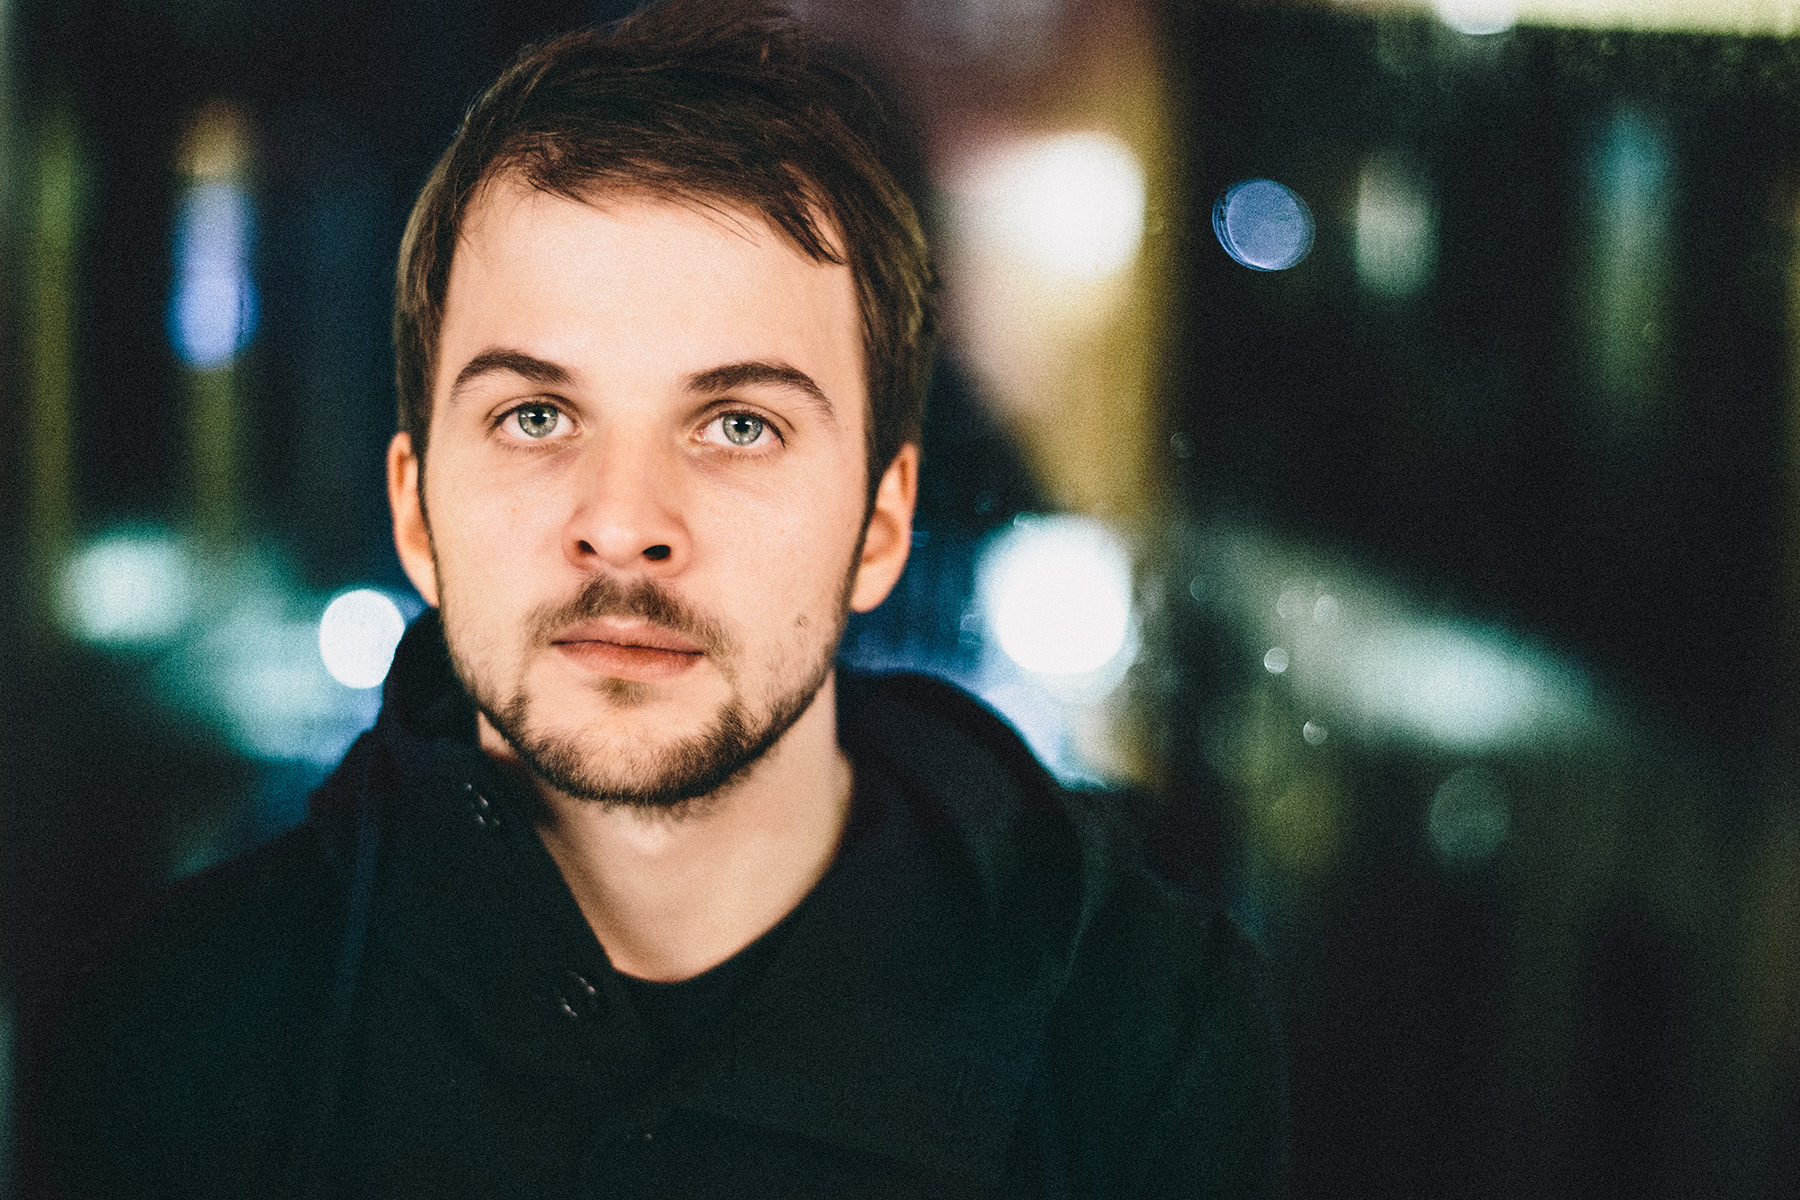 Live Updates From Nils Frahm Concert At The Leeds Howard Assembly Room.